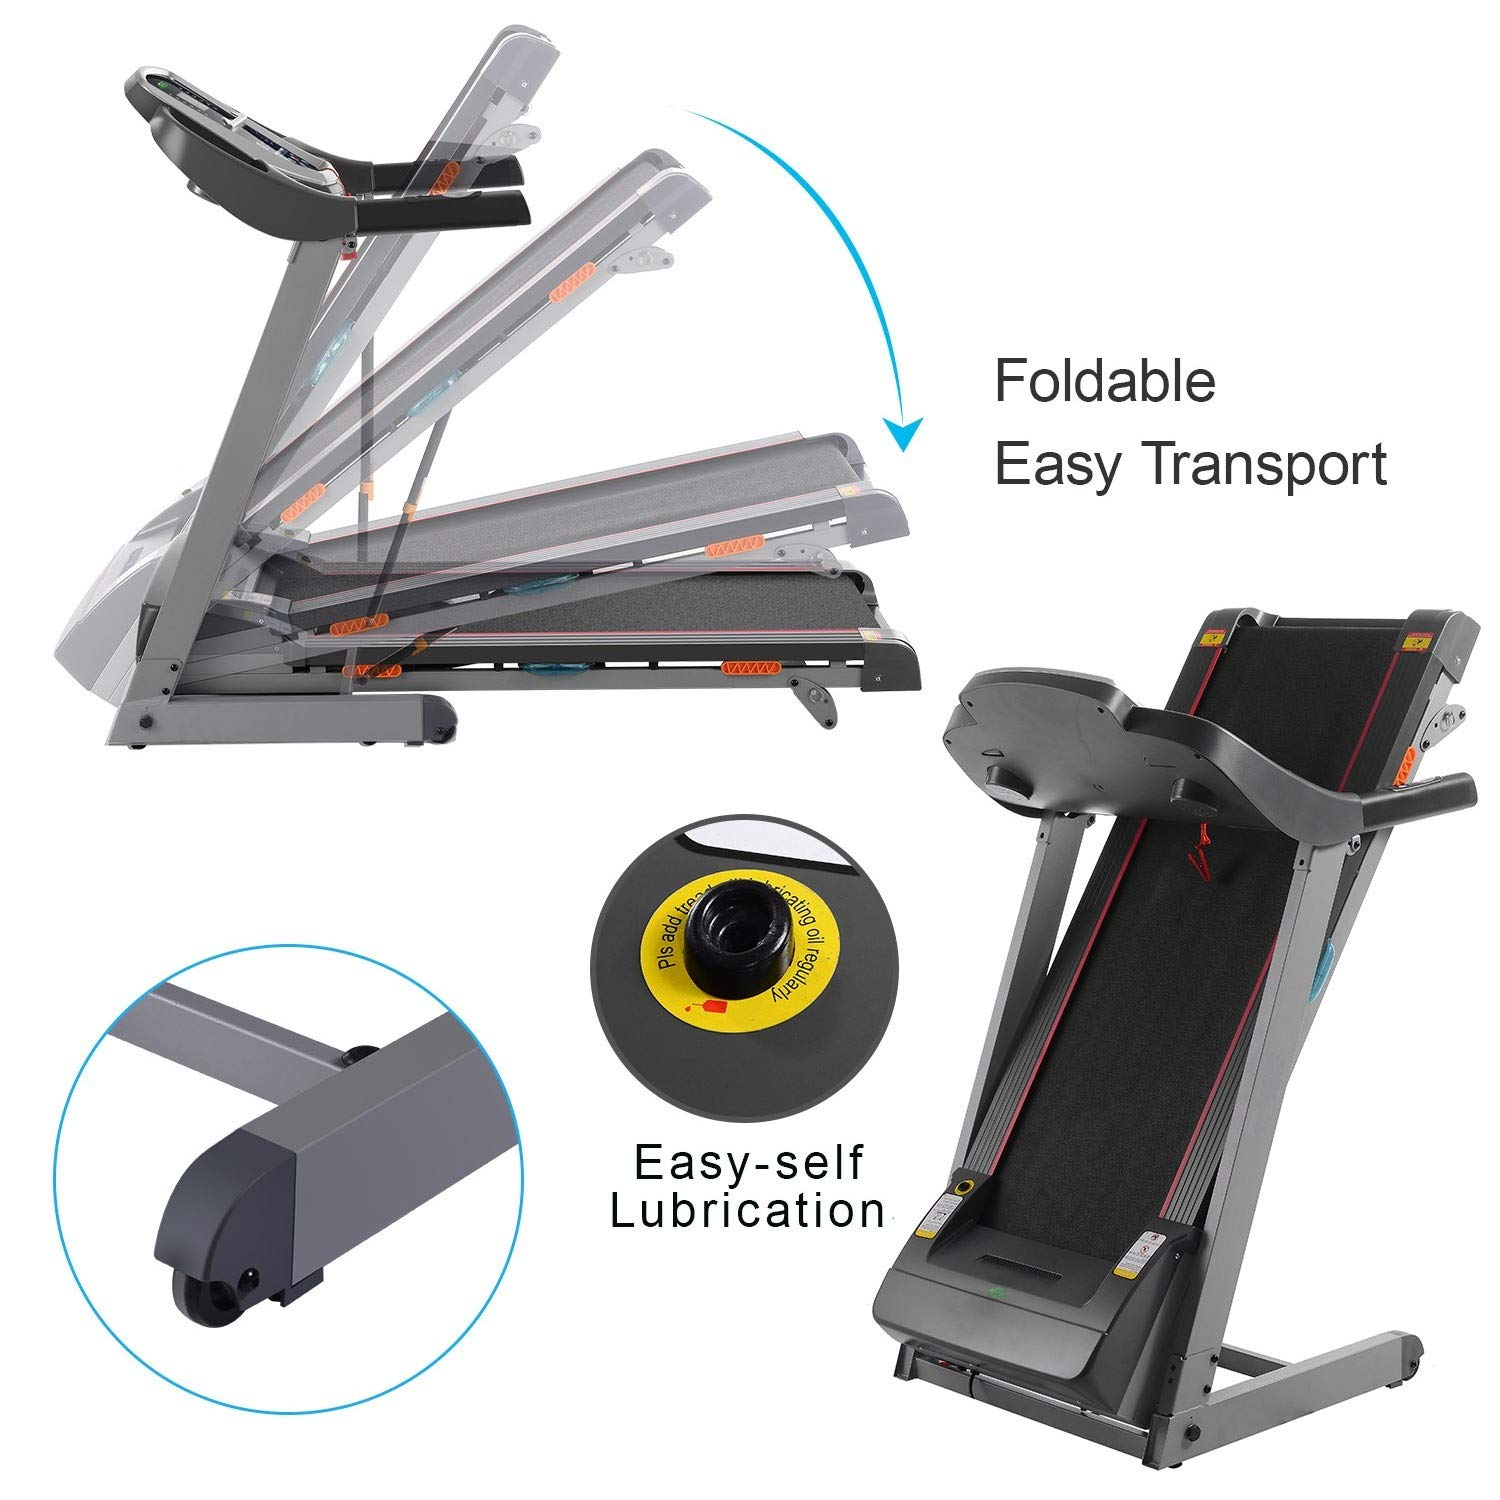 Miageek Fitness Folding Electric Jogging Treadmill with Smartphone APP Control, Walking Running Exercise Machine Incline Trainer Equipment Easy Assembly by Miageek (Image #2)